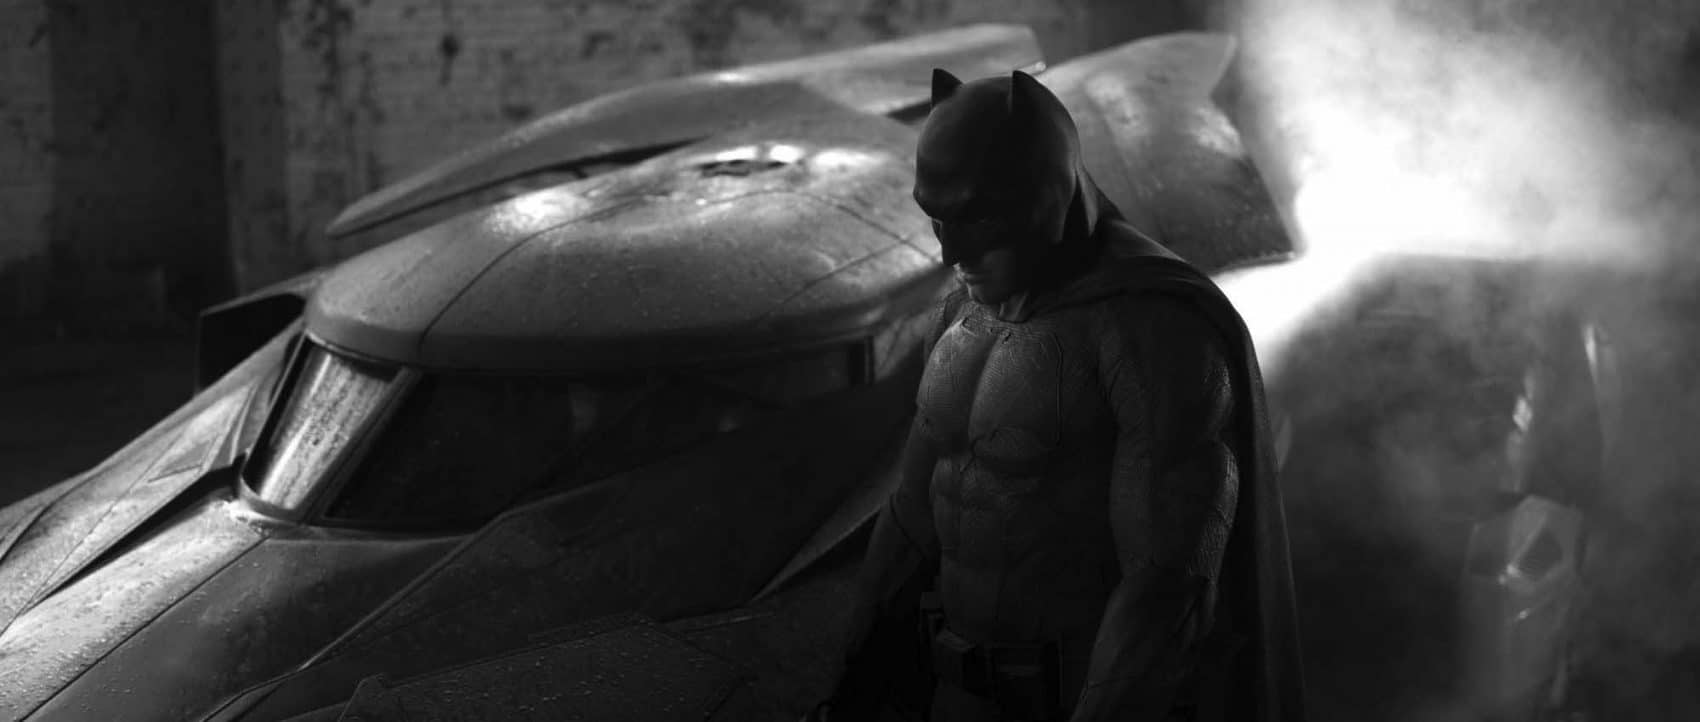 [Comic Con 2015] Batman V Superman : L'Aube de la Justice – Bande Annonce Officielle